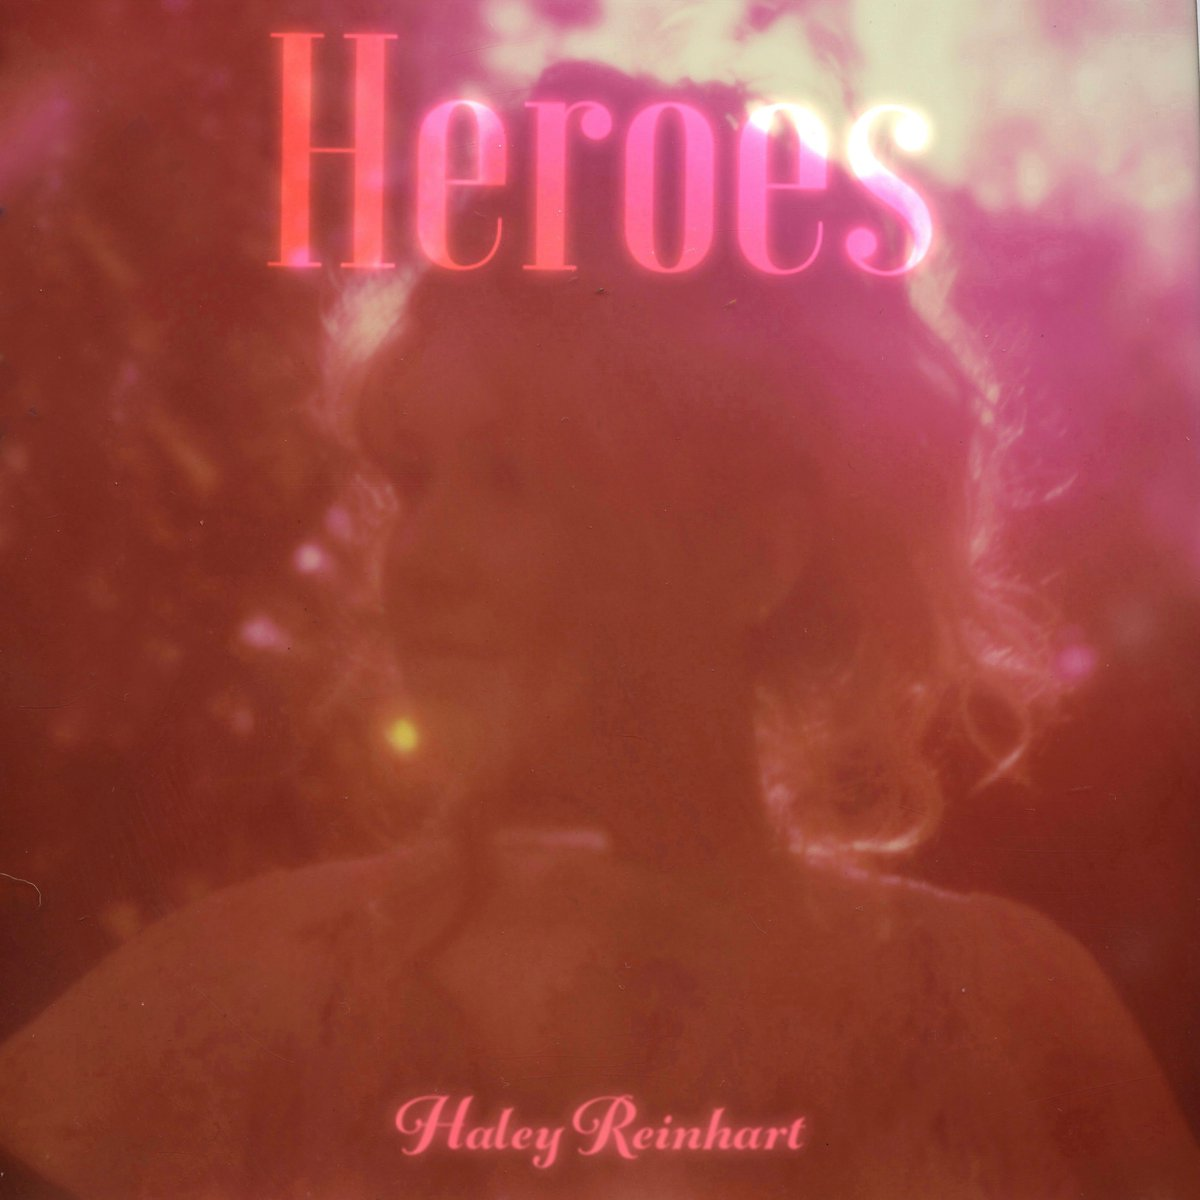 .@HaleyReinhart just released a full version of her haunting and epic rendition of @DavidBowieReal's HEROES, as partly heard in #WeCanBeHeroes. Check it out!